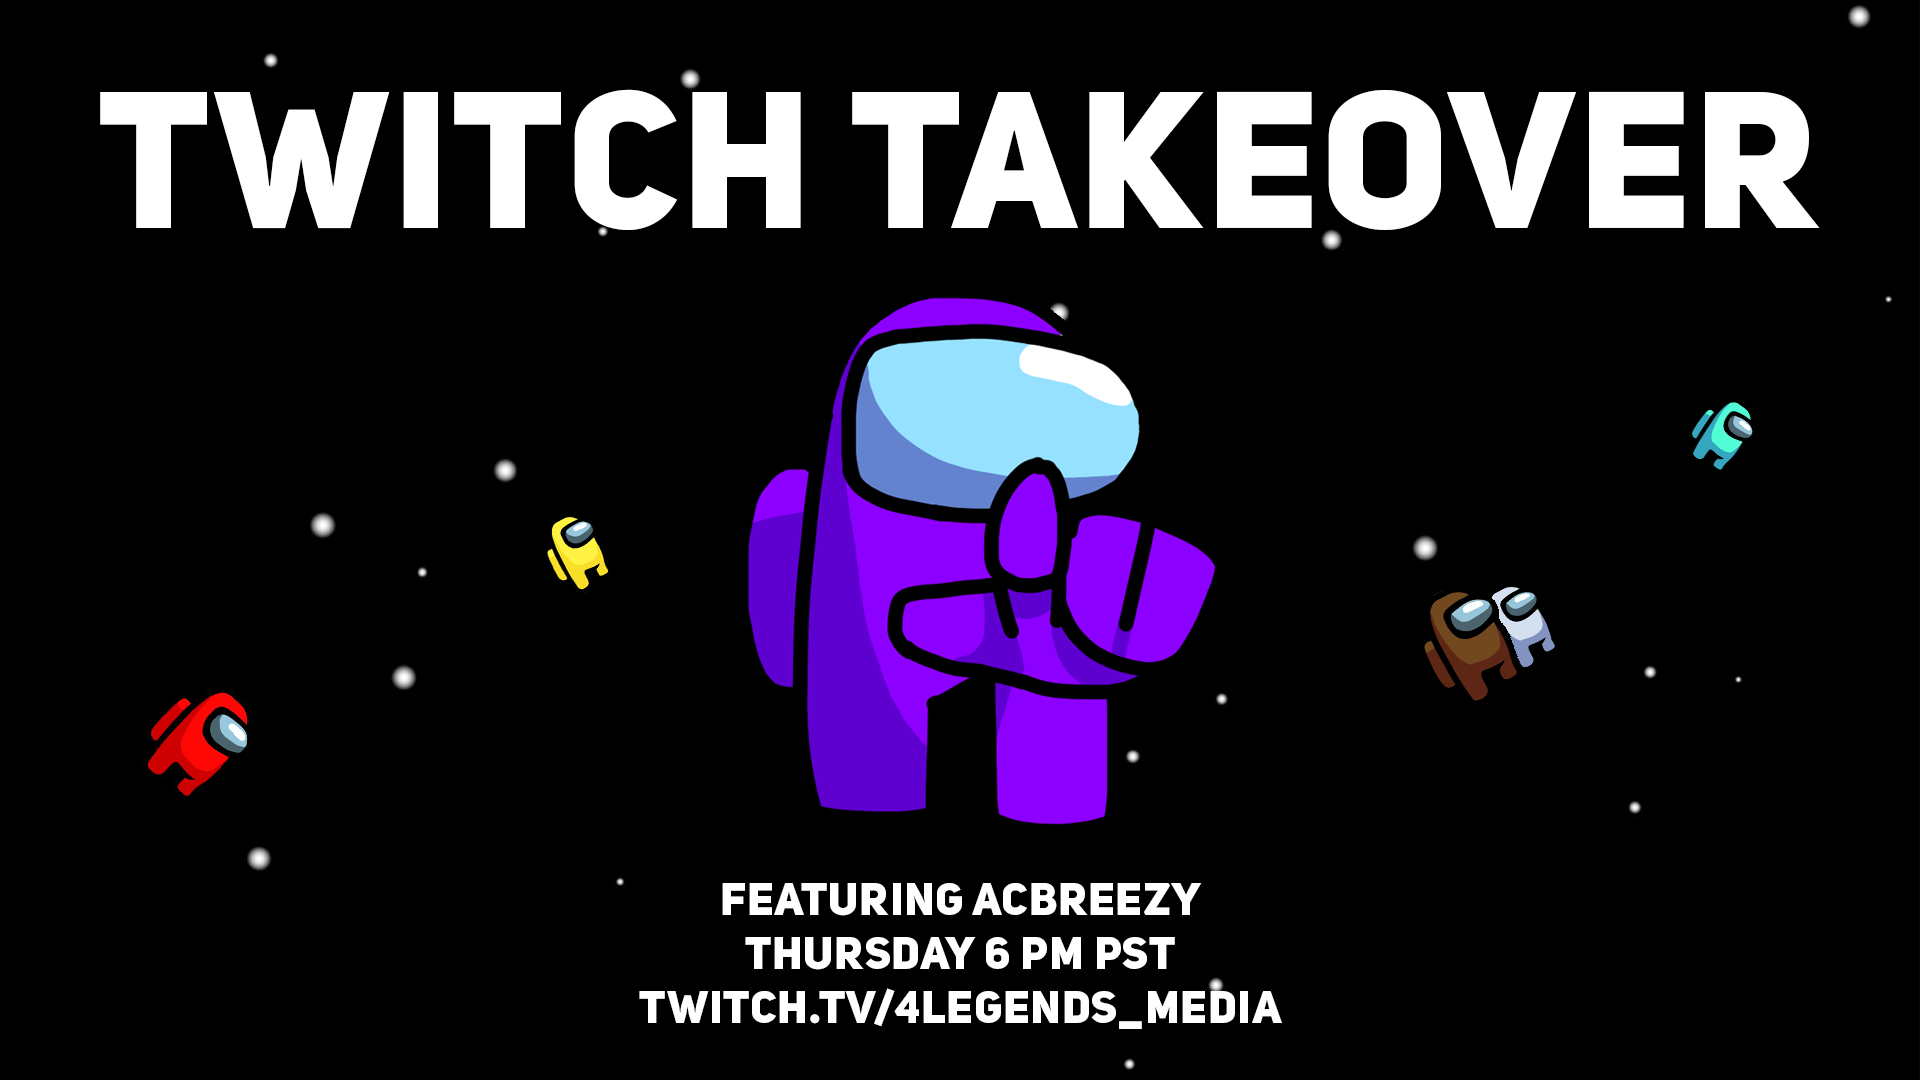 4LM's first Twitch Takeover with ACBreezy